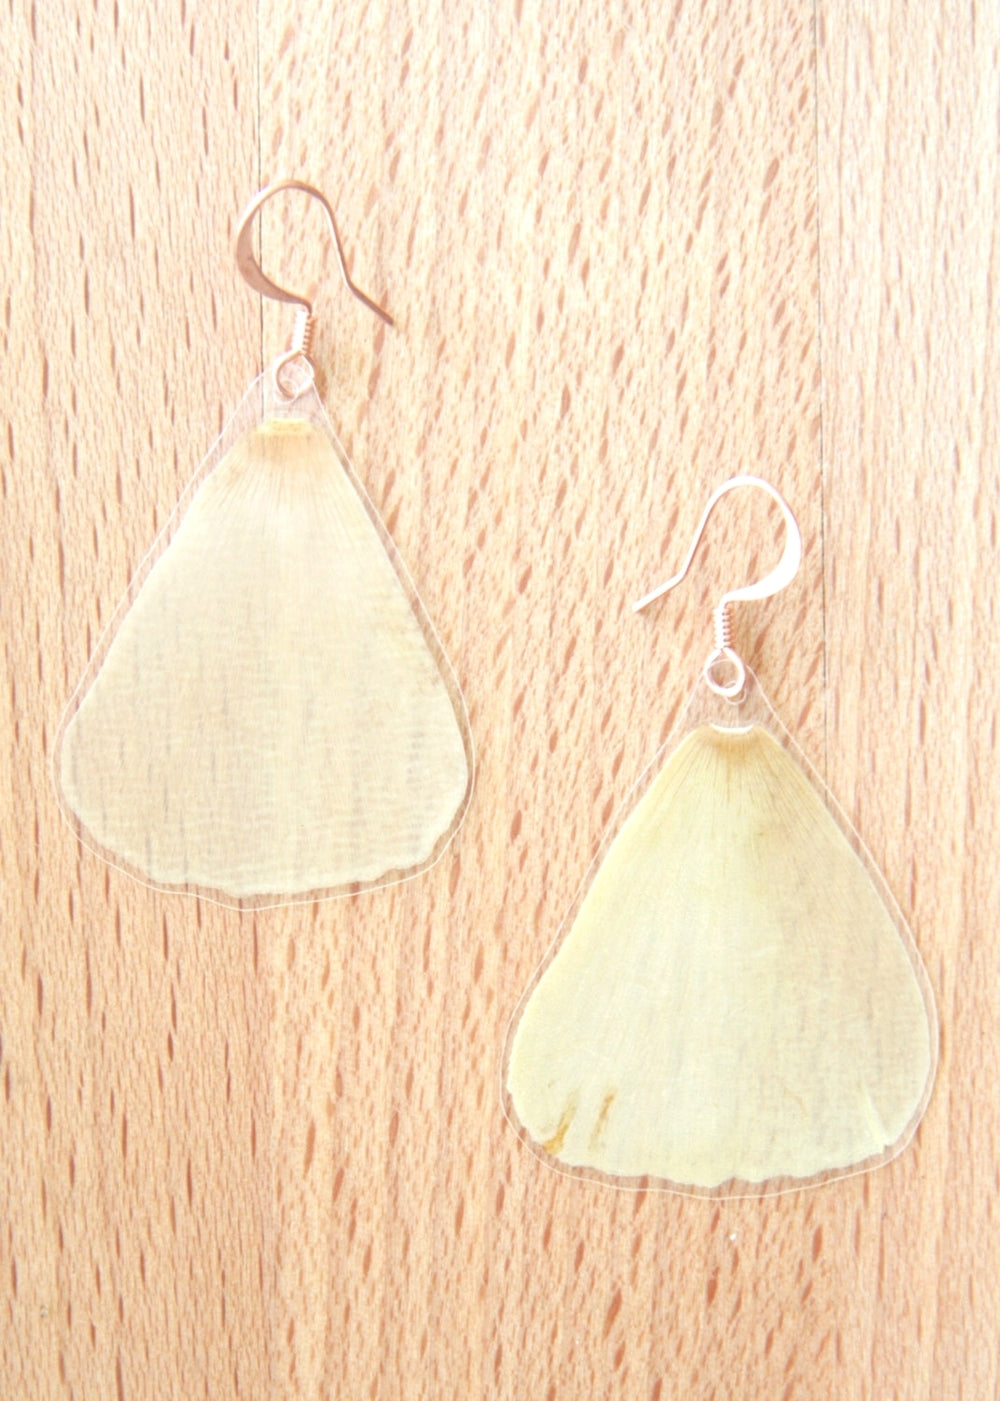 Yellow California Poppy Pressed Flower Earrings